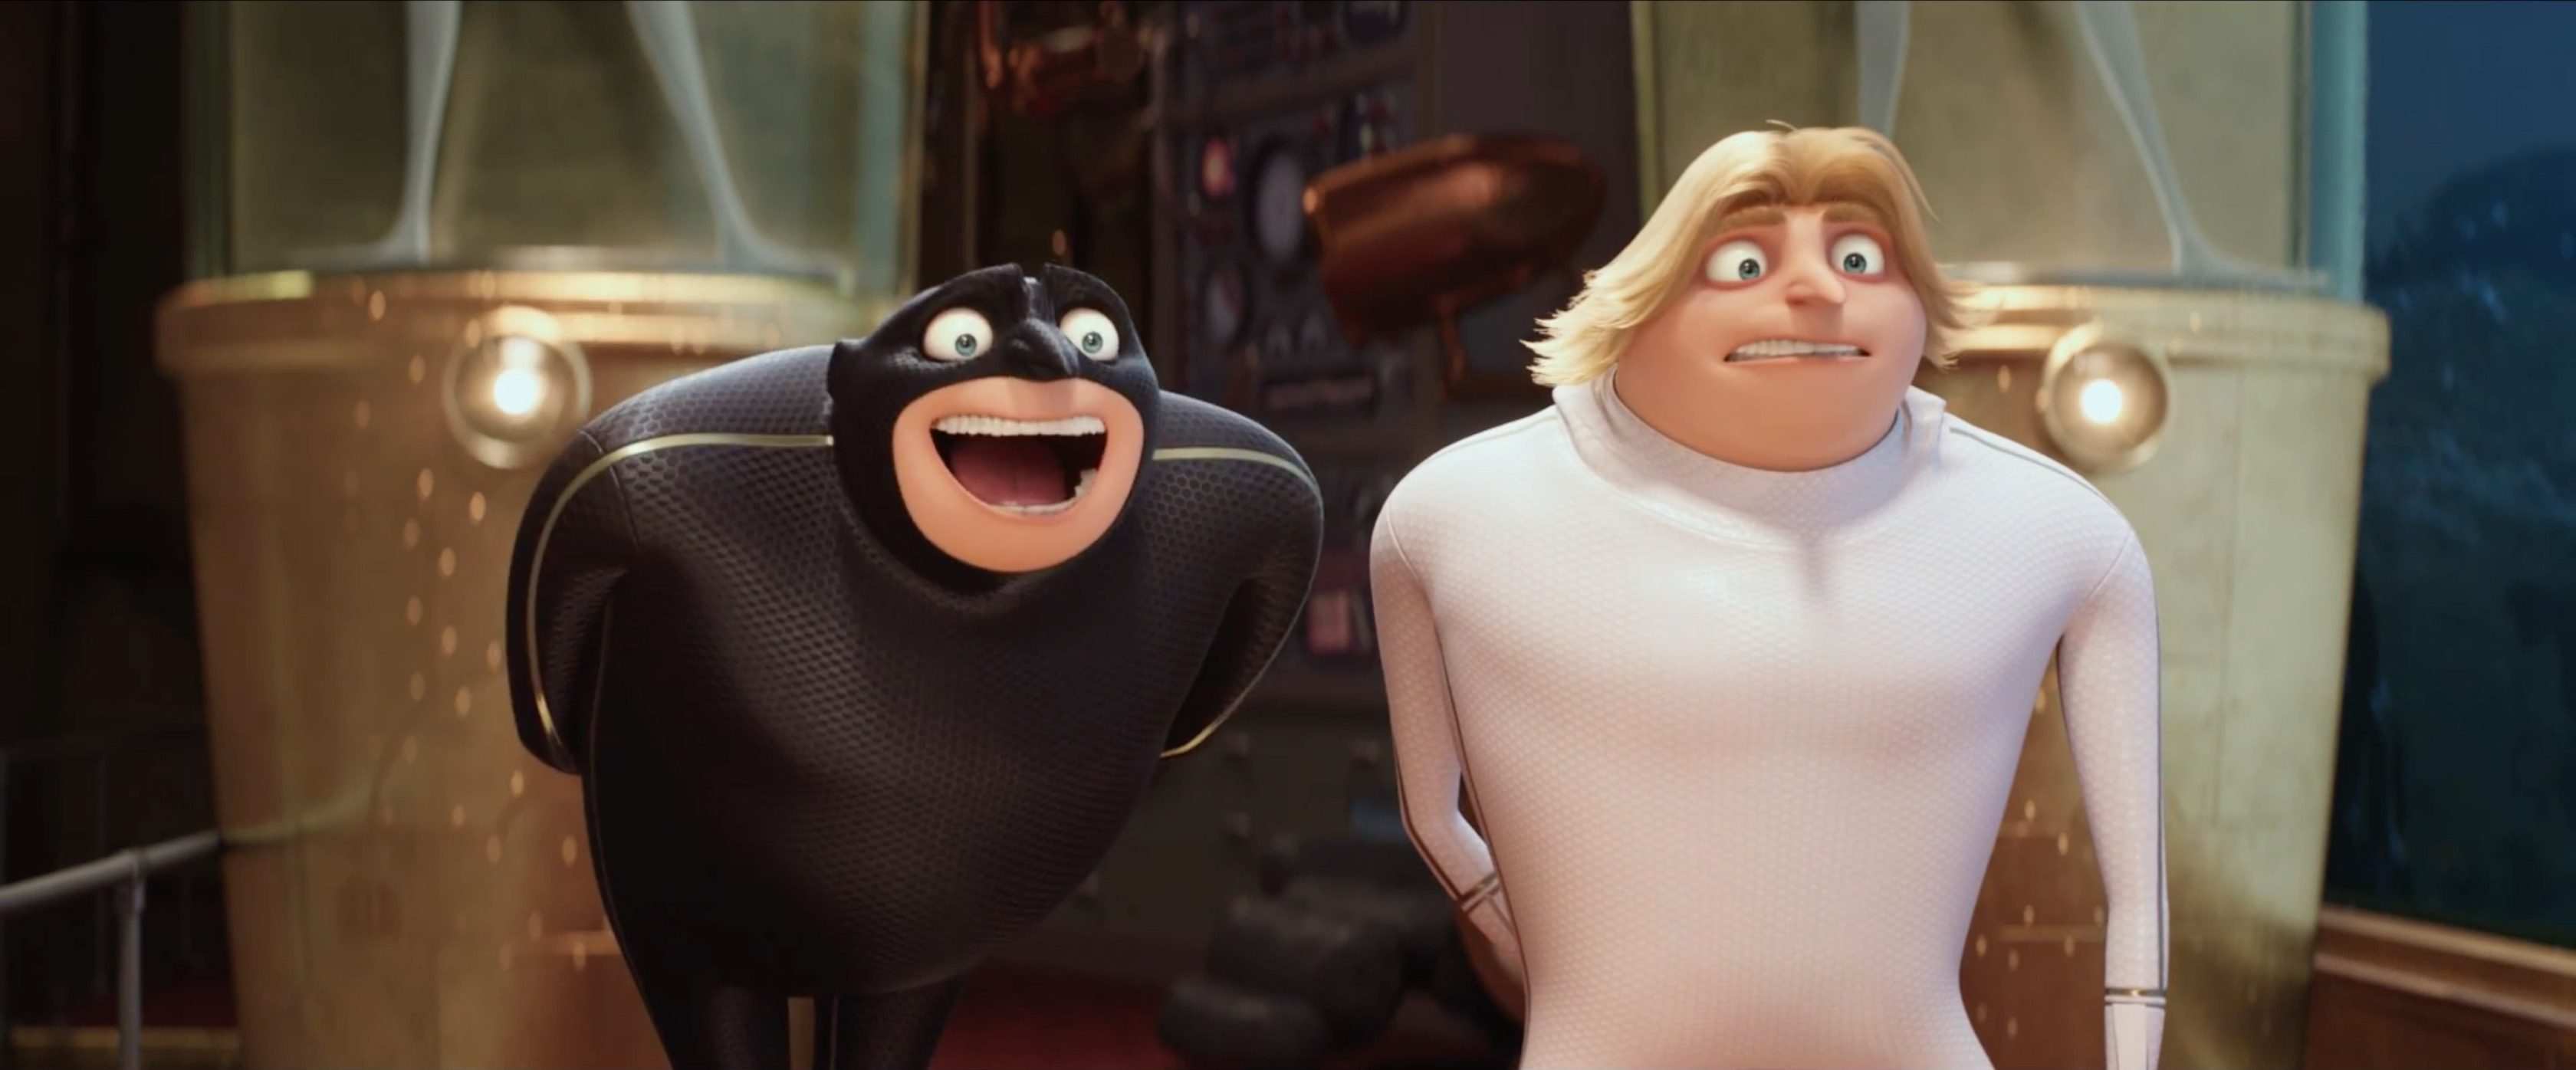 Despicable Me 3 New TV Spots